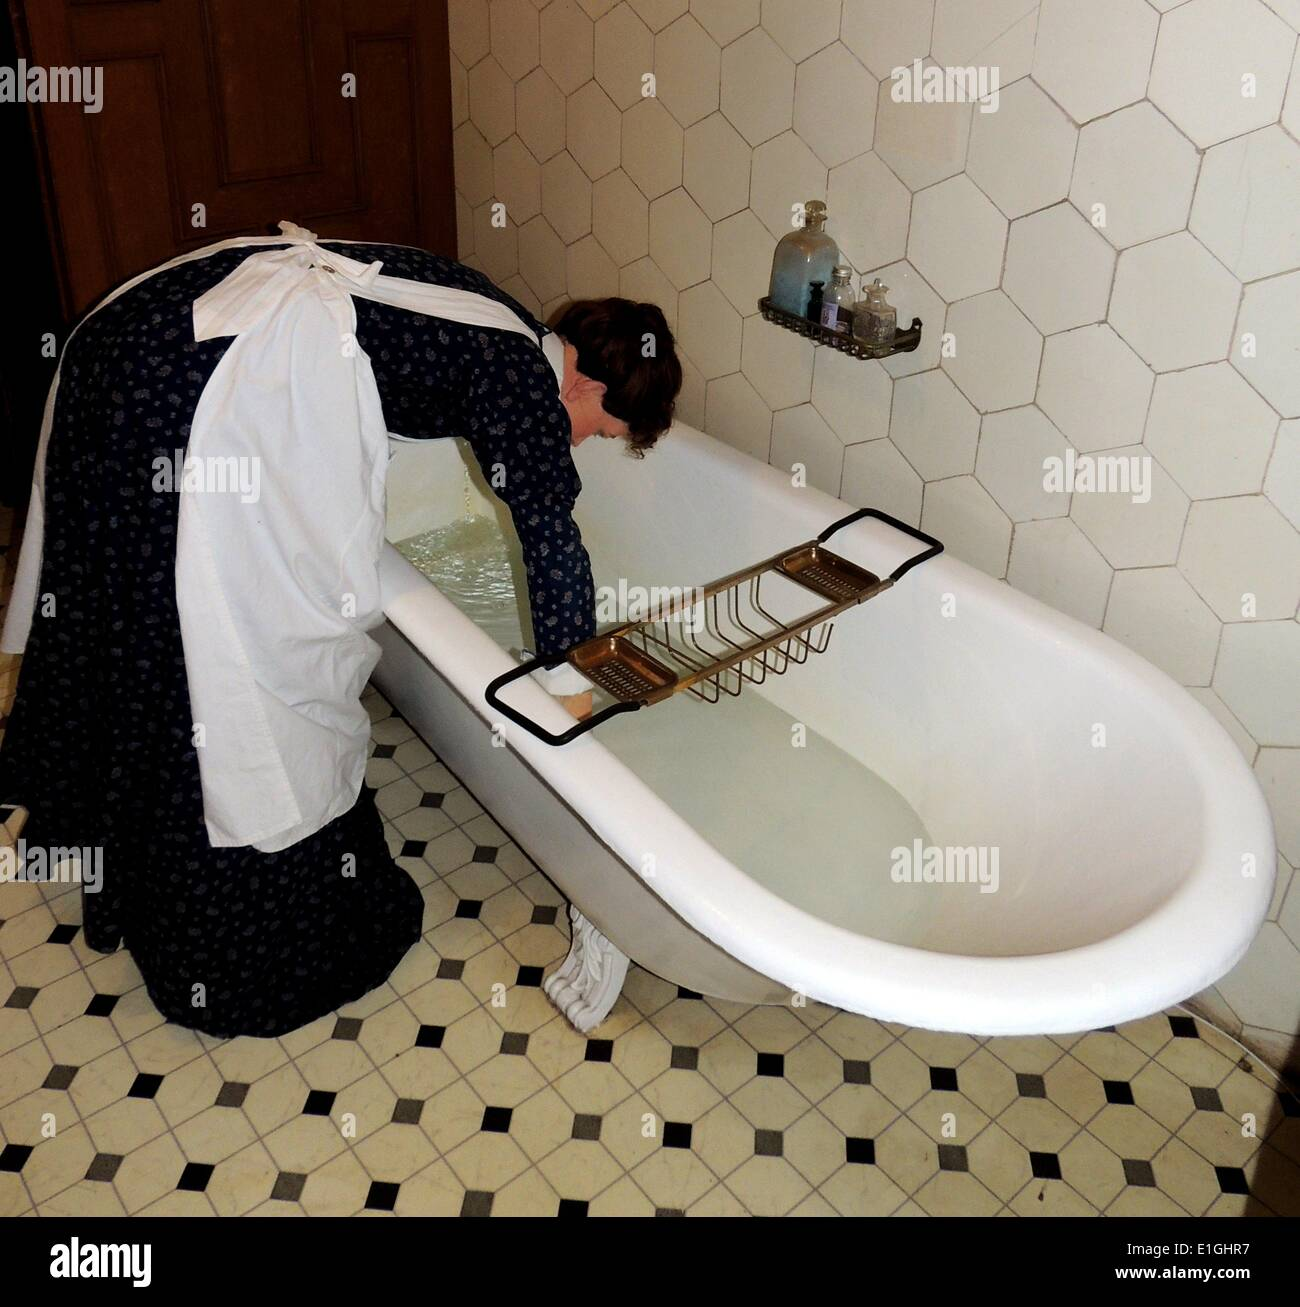 Victorian bath with butler pouring hot water in a tiled en-suite bathroom.  Decorated to 19th century requirements, Warwick - Stock Image